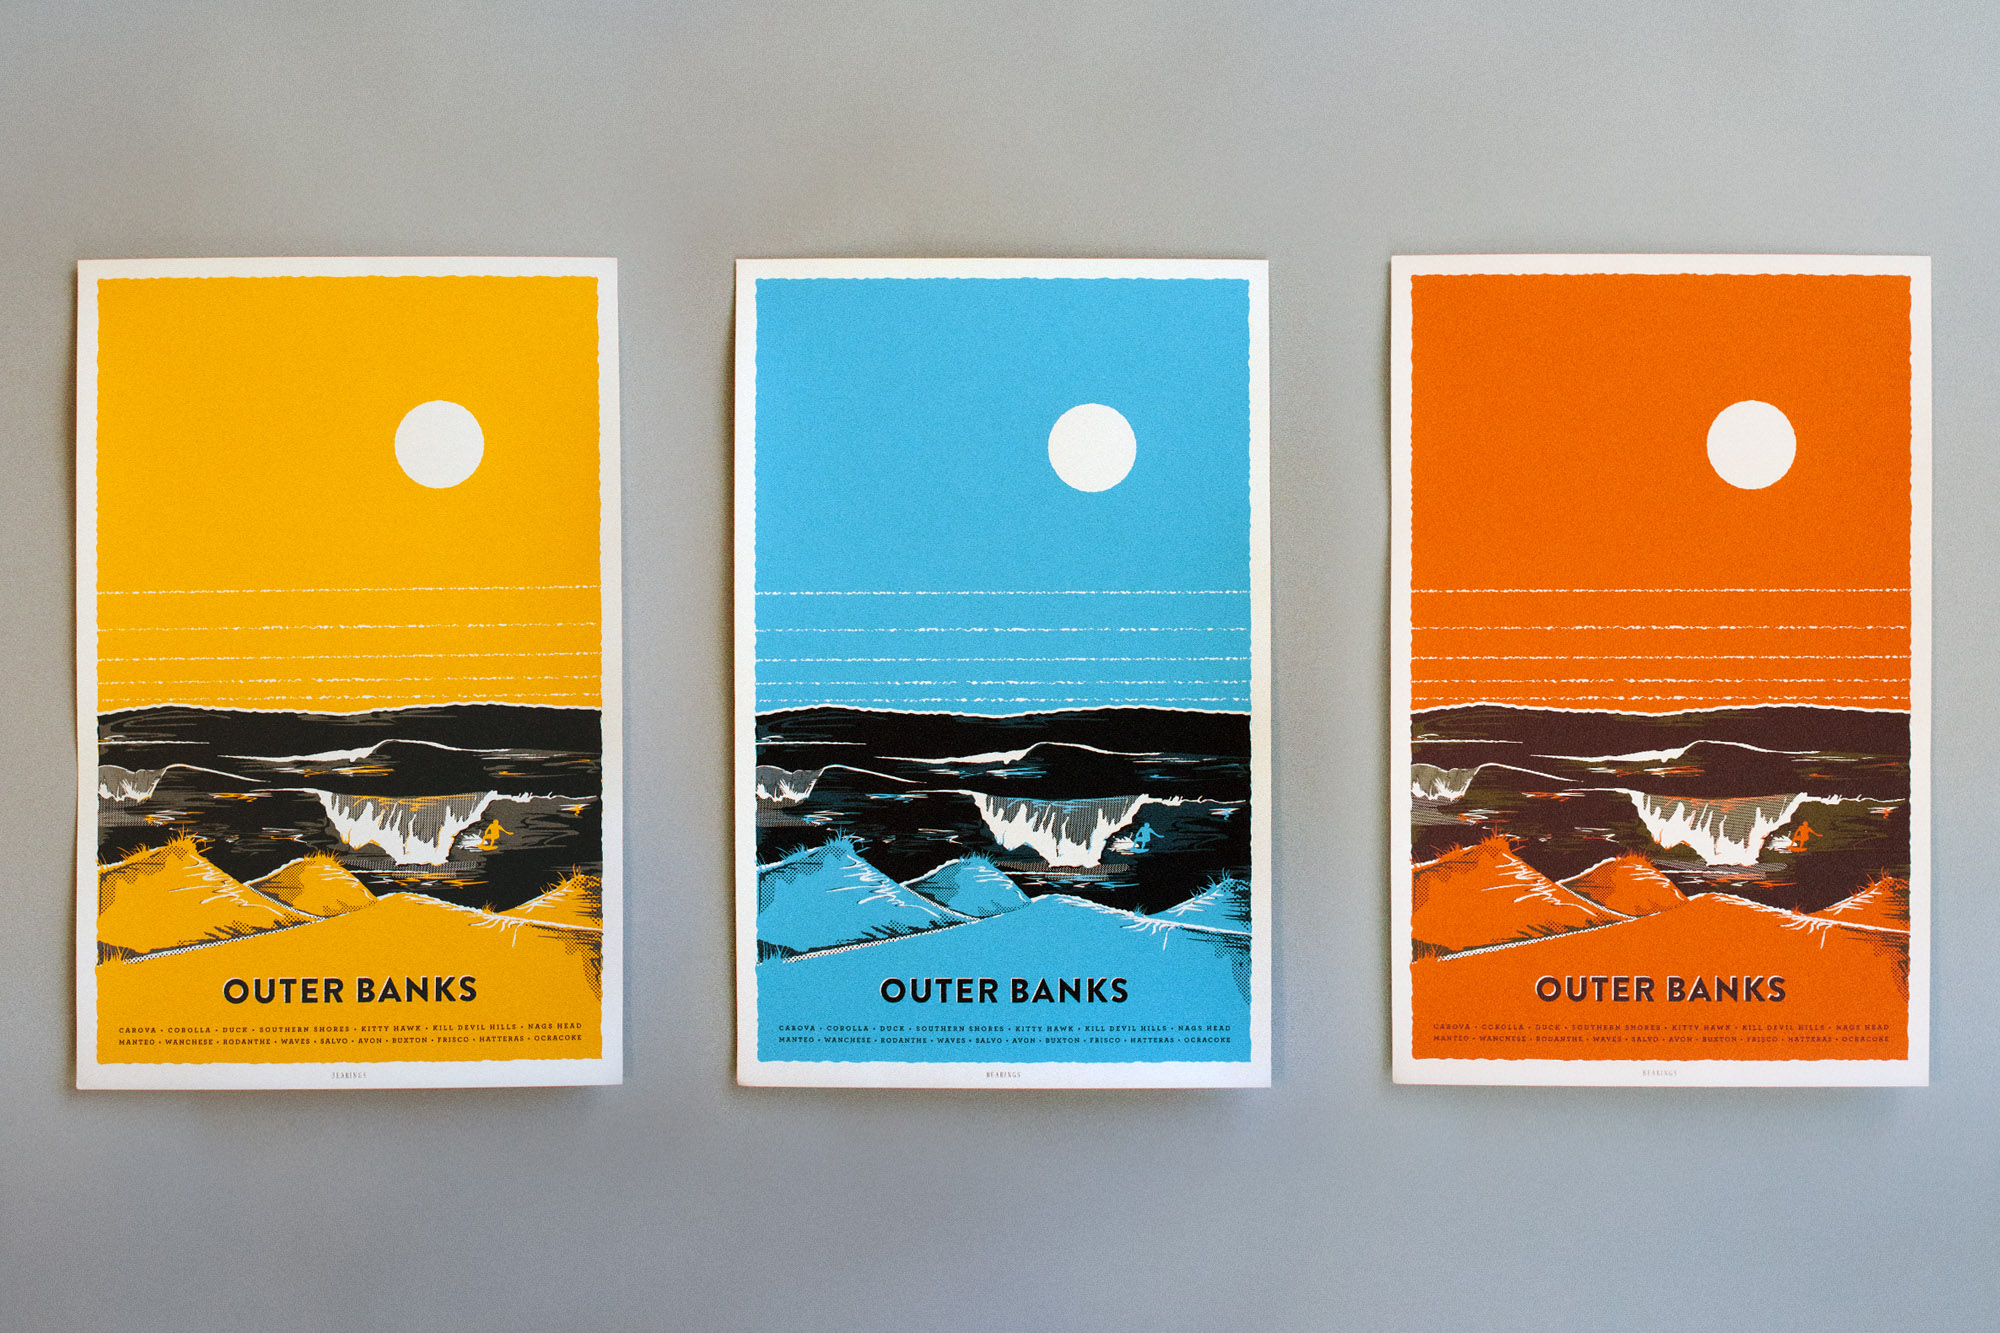 All three illustrated OBX poster prints for Bearings guide in gold, blue, and orange colorway options show a surfer and the dunes of the Outer banks under a large horizon and sun.